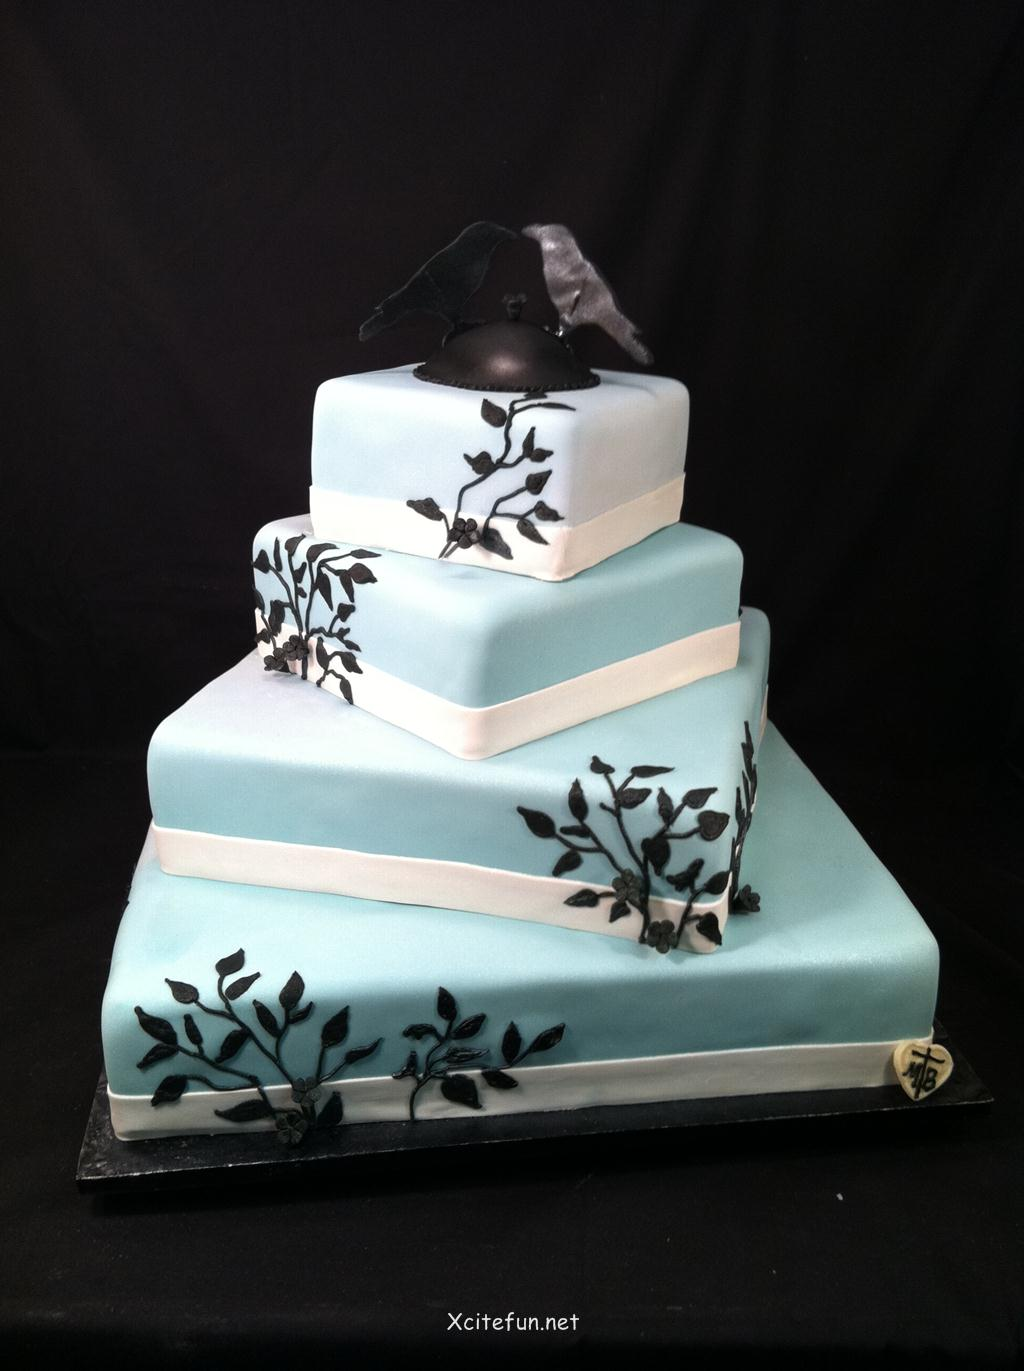 Cake Decorating Ideas For Weddings : Wedding Cakes - Decorating Ideas